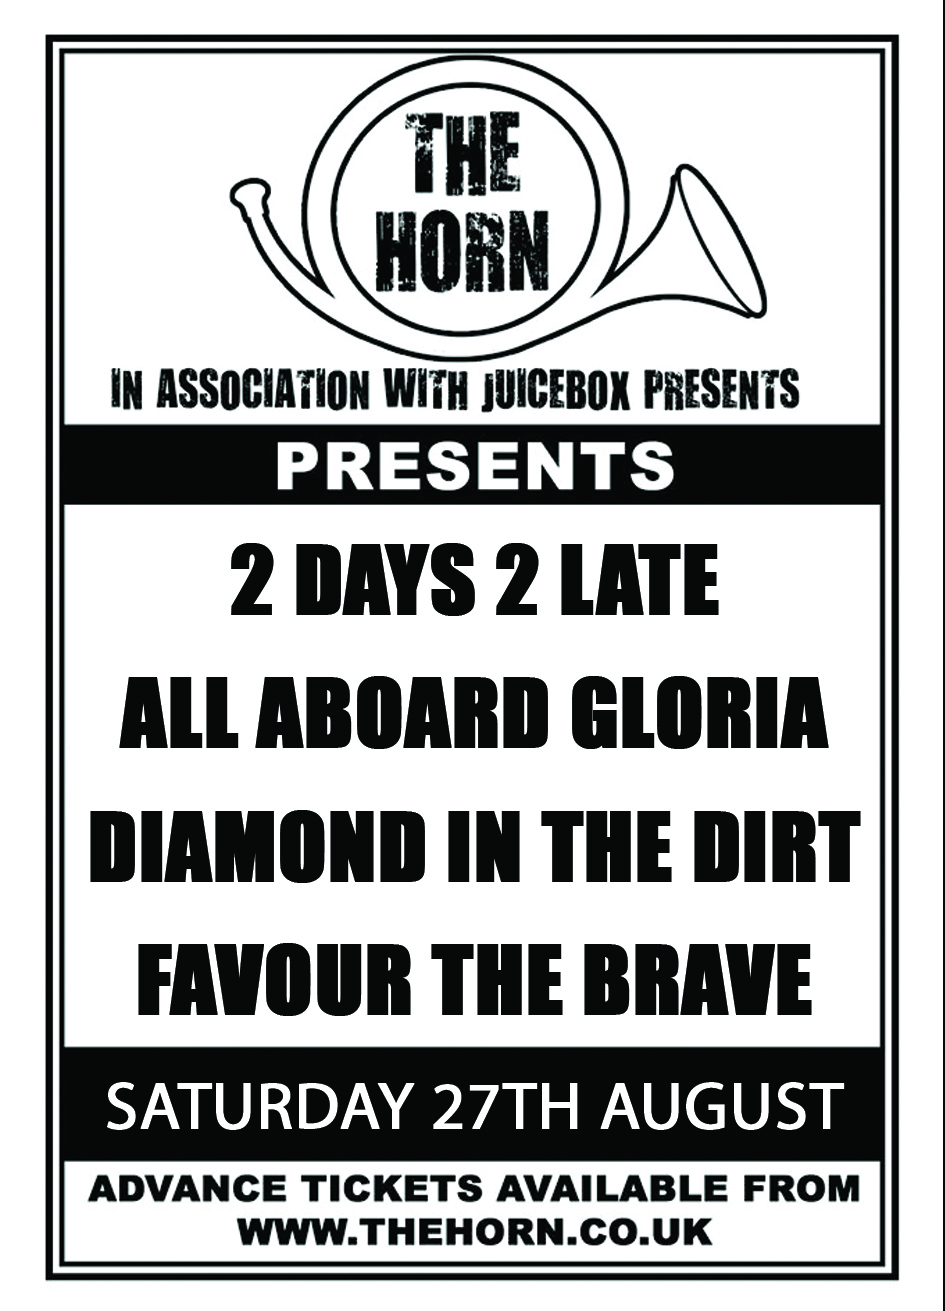 2 Days 2 Late ( www.facebook.com/2days2lateoffical )  All Aboard Gloria ( www.facebook.com/allaboardgloriaofficial )  Diamond In The Dirt ( www.facebook.com/DiamondintheDirtUK )  Favour The Brave ( https://www.facebook.com/FavourTheBraveFTB )